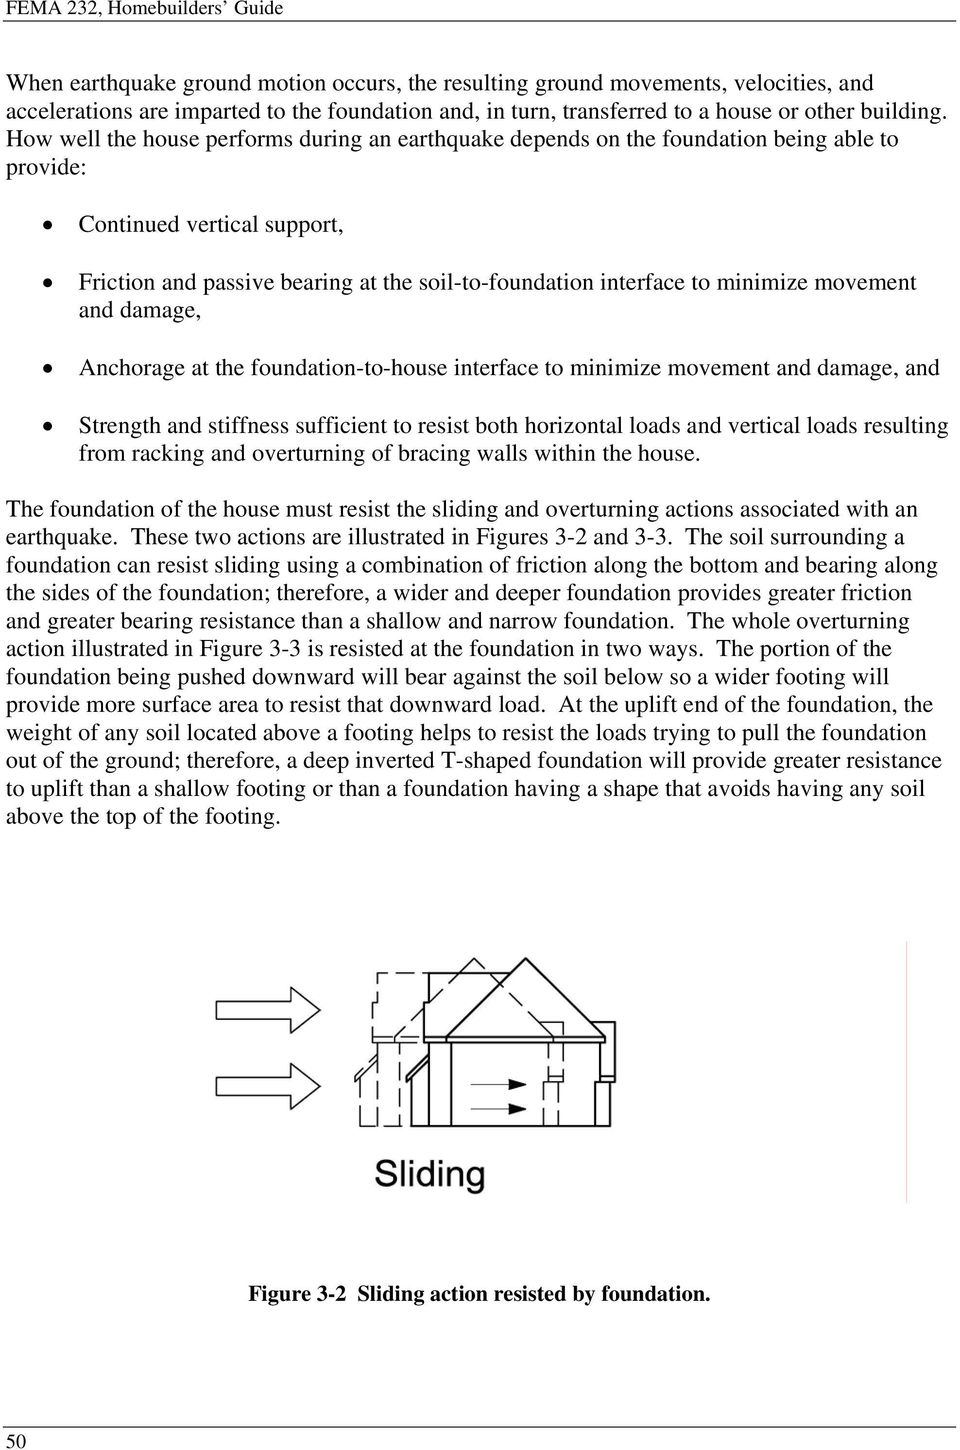 How well the house performs during an earthquake depends on the foundation being able to provide: Continued vertical support, Friction and passive bearing at the soil-to-foundation interface to